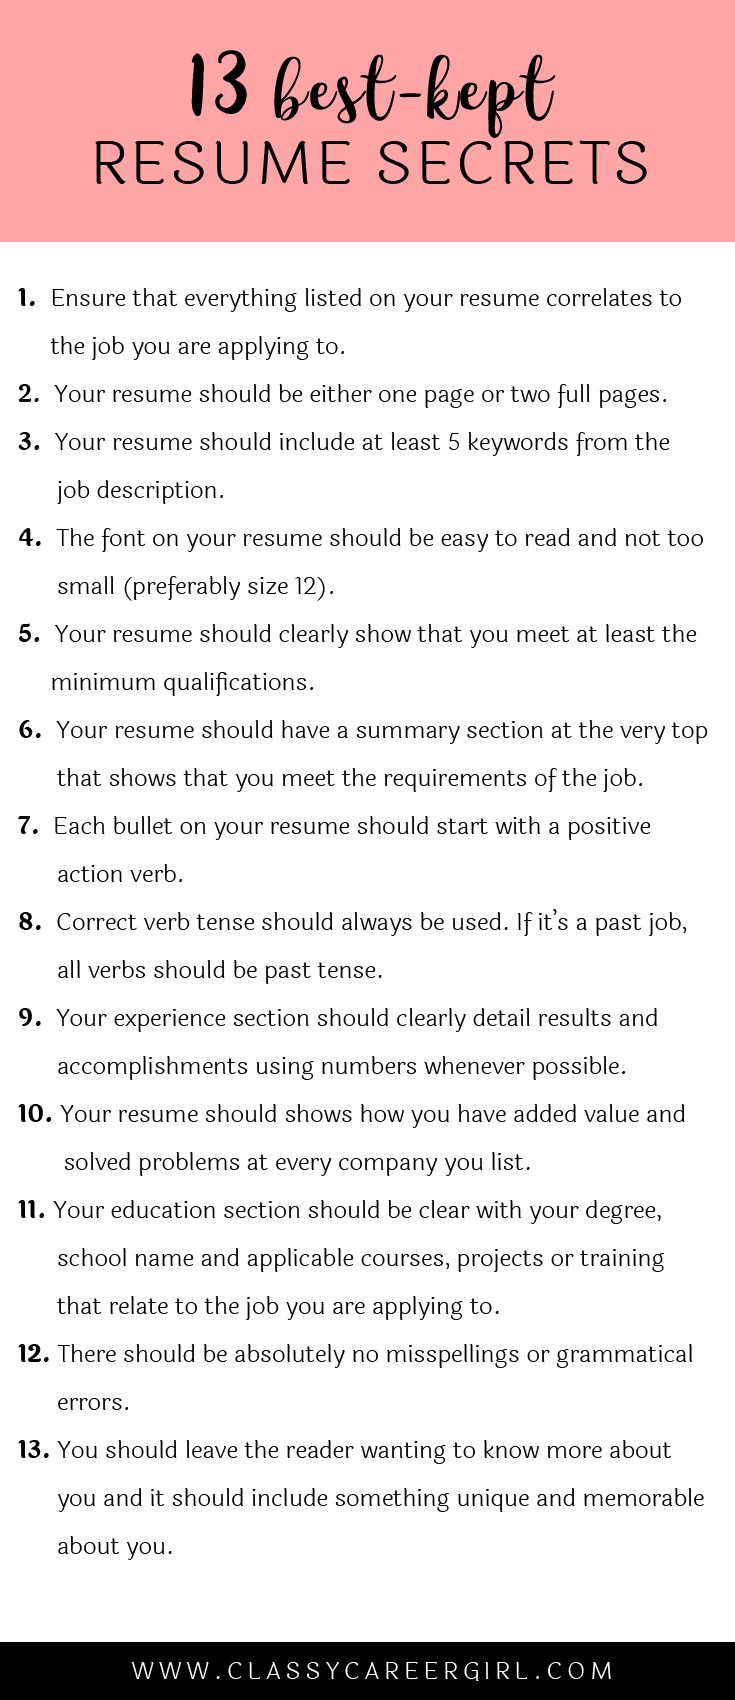 Opposenewapstandardsus  Pretty  Ideas About Resume On Pinterest  Cv Format Resume Cv And  With Likable Some Hiring Managers Will Toss Your Resume Out If You Dont Know These  With Awesome Interactive Resume Builder Also Create Resume In Word In Addition Resume Formats For Word And General Objective For A Resume As Well As Chef Resume Objective Additionally Accounting Clerk Resume Sample From Pinterestcom With Opposenewapstandardsus  Likable  Ideas About Resume On Pinterest  Cv Format Resume Cv And  With Awesome Some Hiring Managers Will Toss Your Resume Out If You Dont Know These  And Pretty Interactive Resume Builder Also Create Resume In Word In Addition Resume Formats For Word From Pinterestcom